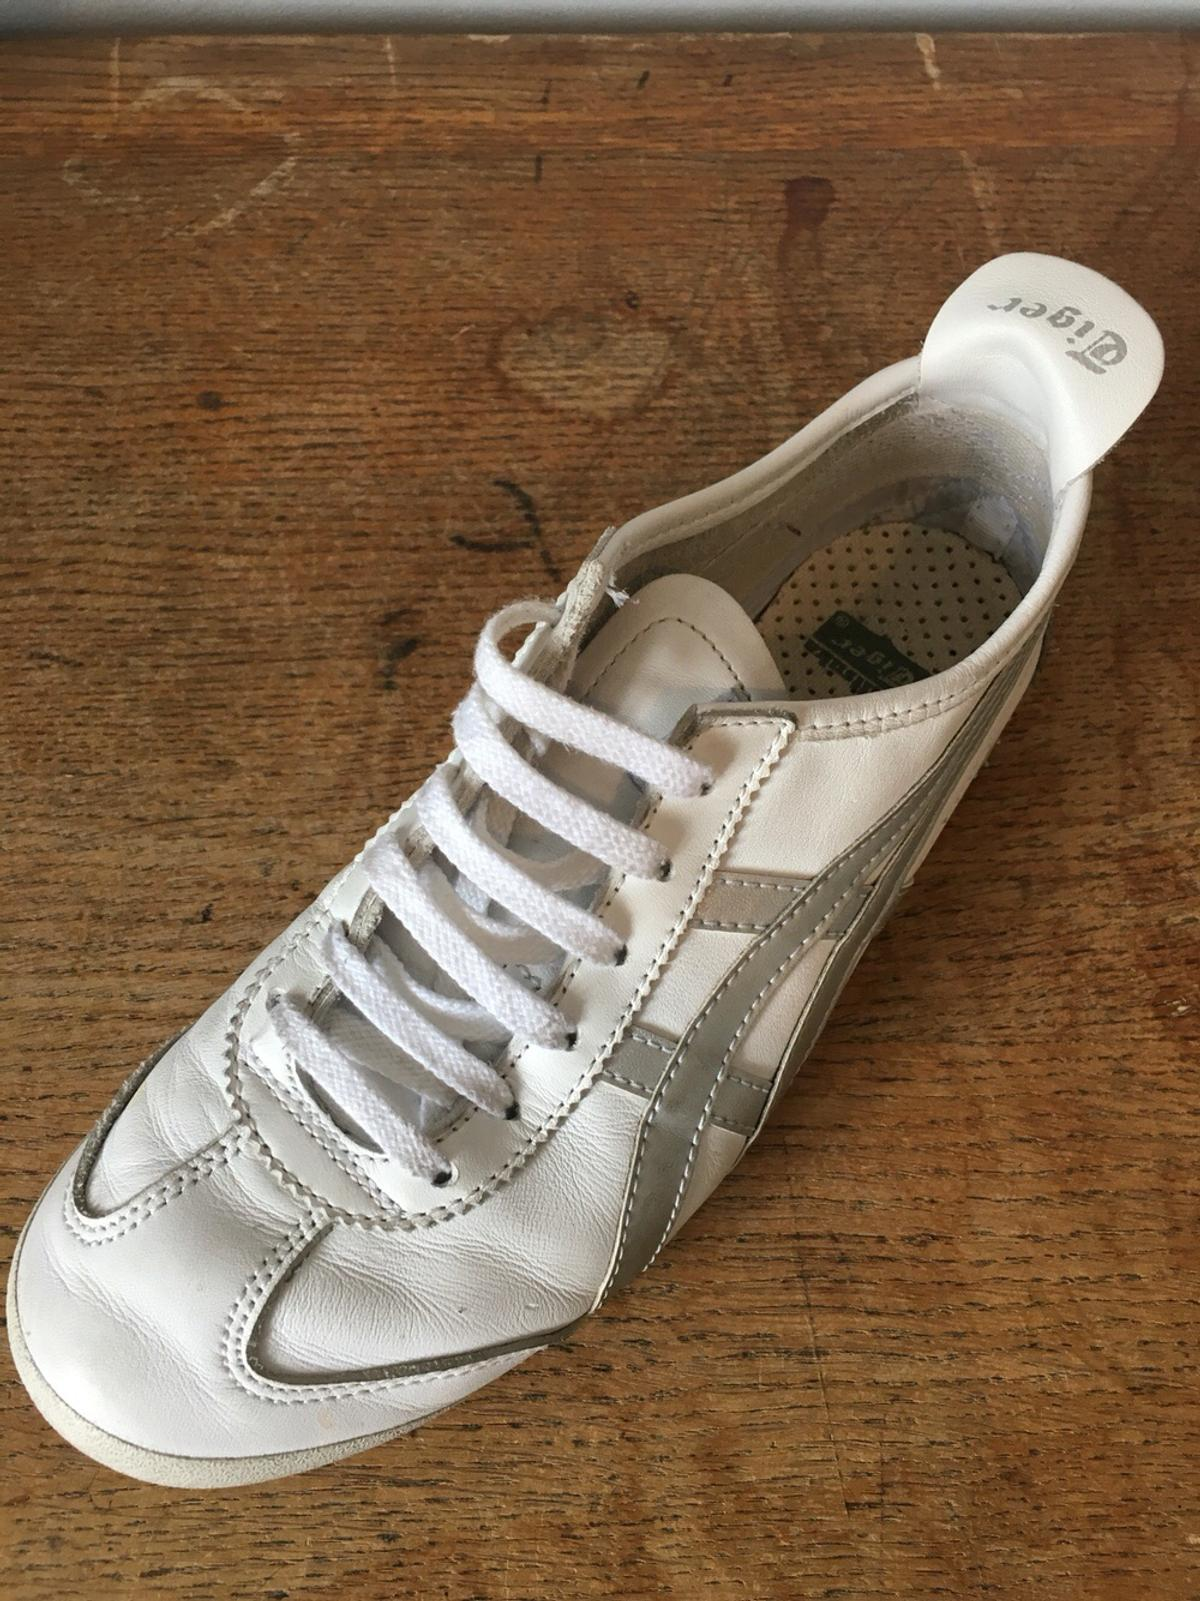 online store 9d8b5 0db99 Onitsuka Tiger Mexico 66 Trainers UK 6/39 in WA9 Helens for ...